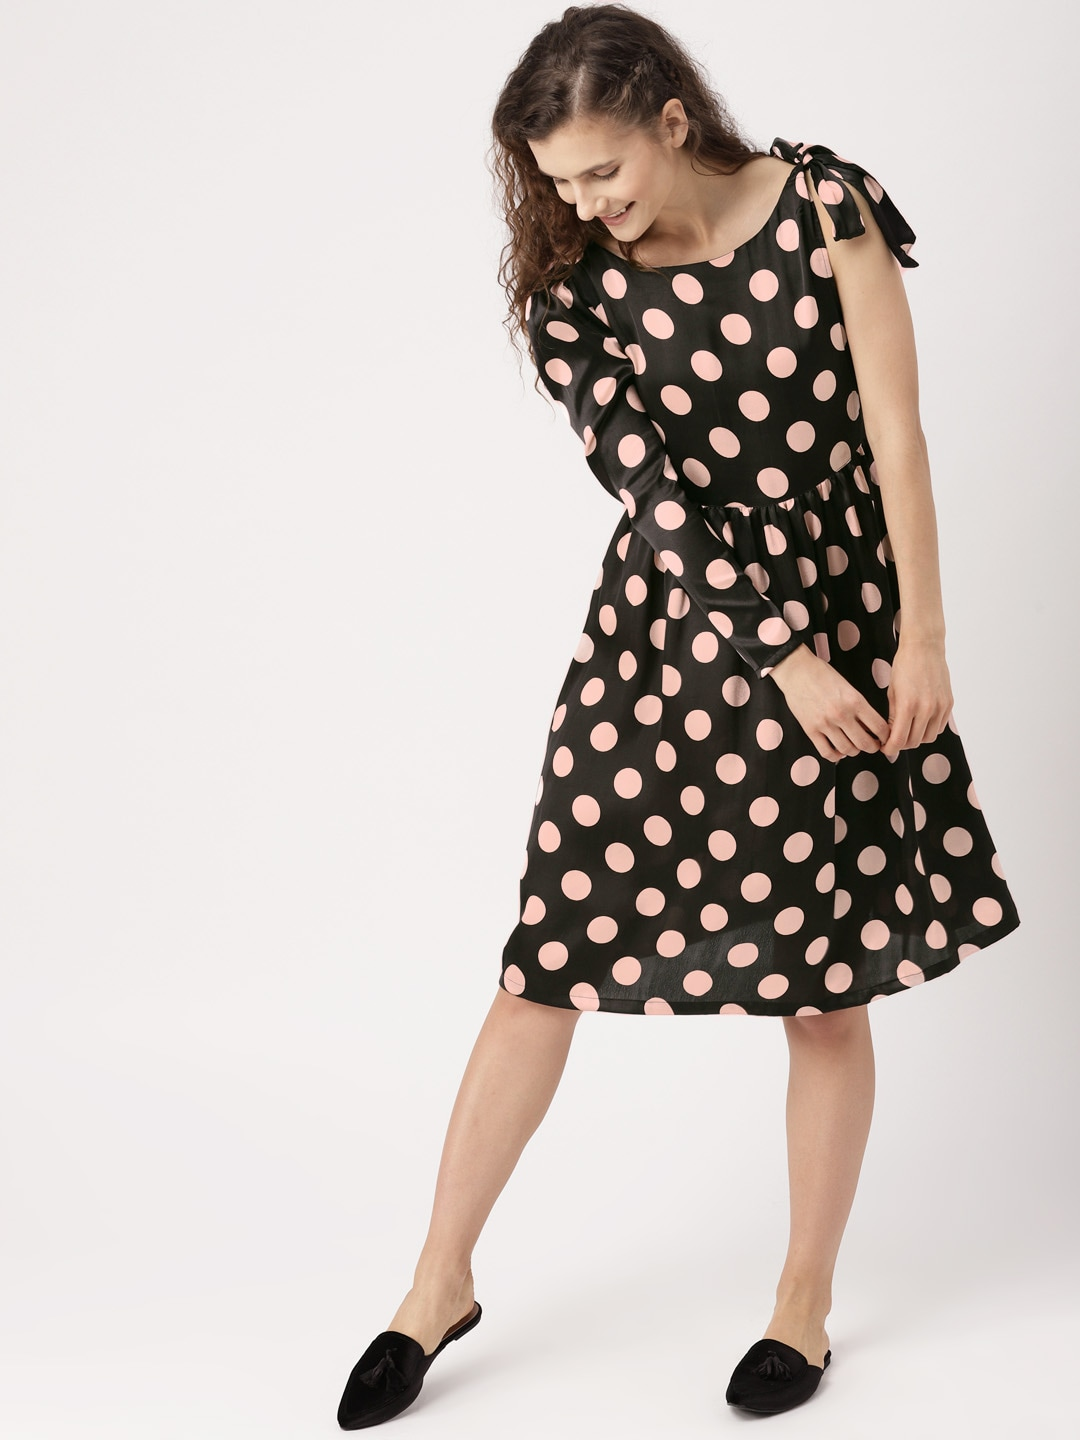 5815d03ca5f Polka Dots Dresses - Buy Polka Dots Dresses online in India - Myntra